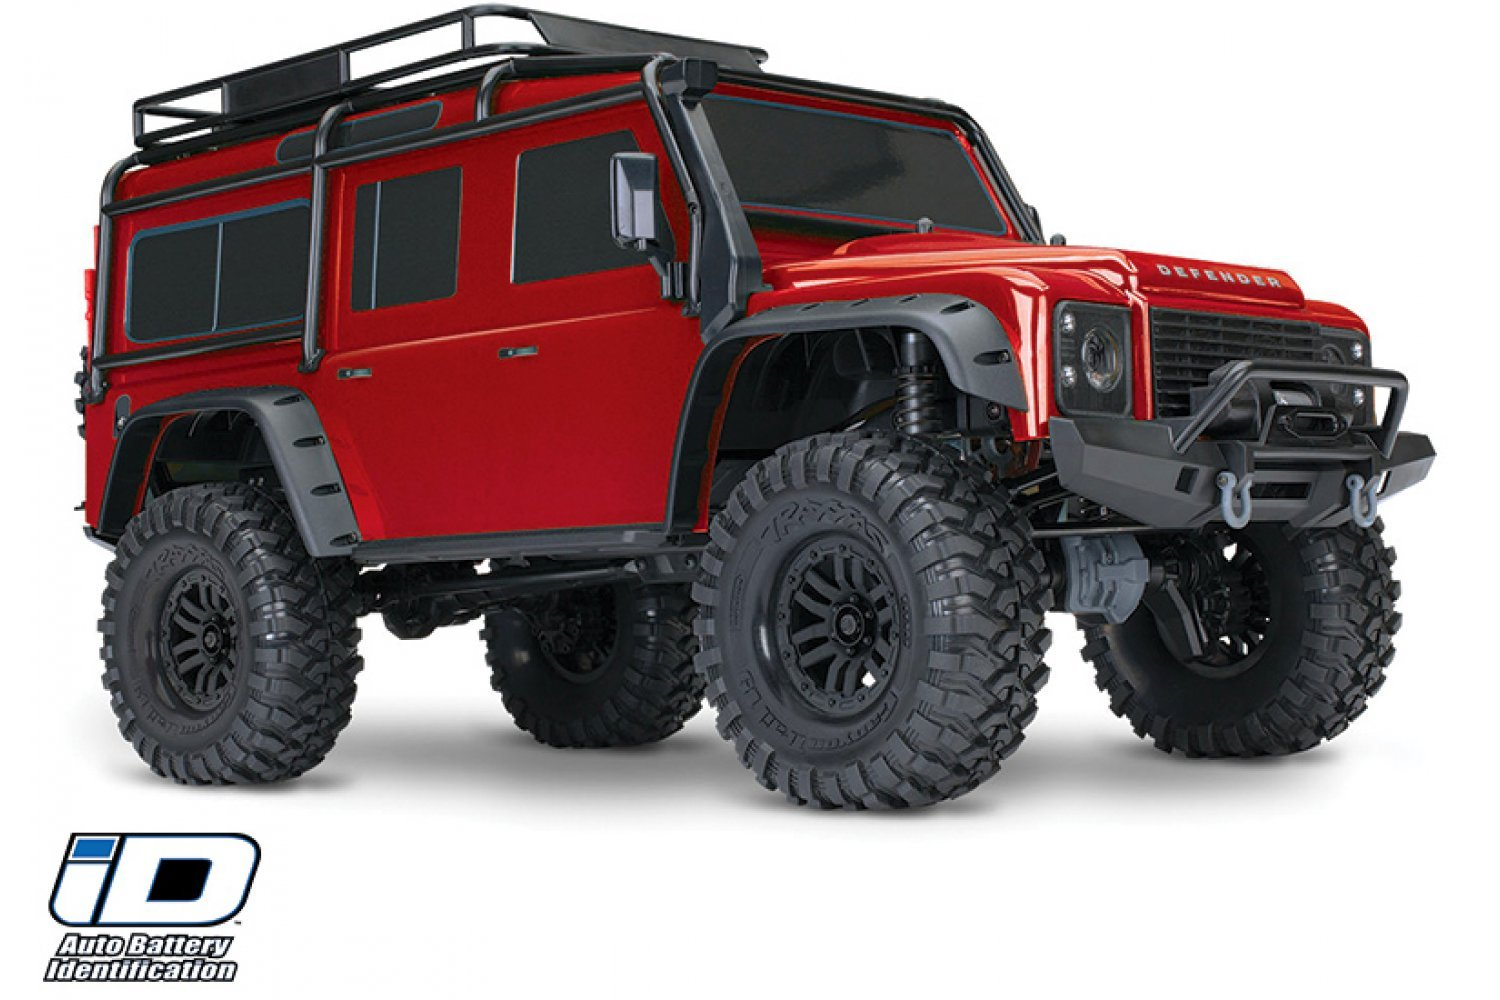 82056-4 | Traxxas 1/10 TRX-4 Defender Electric Off-Road Rock